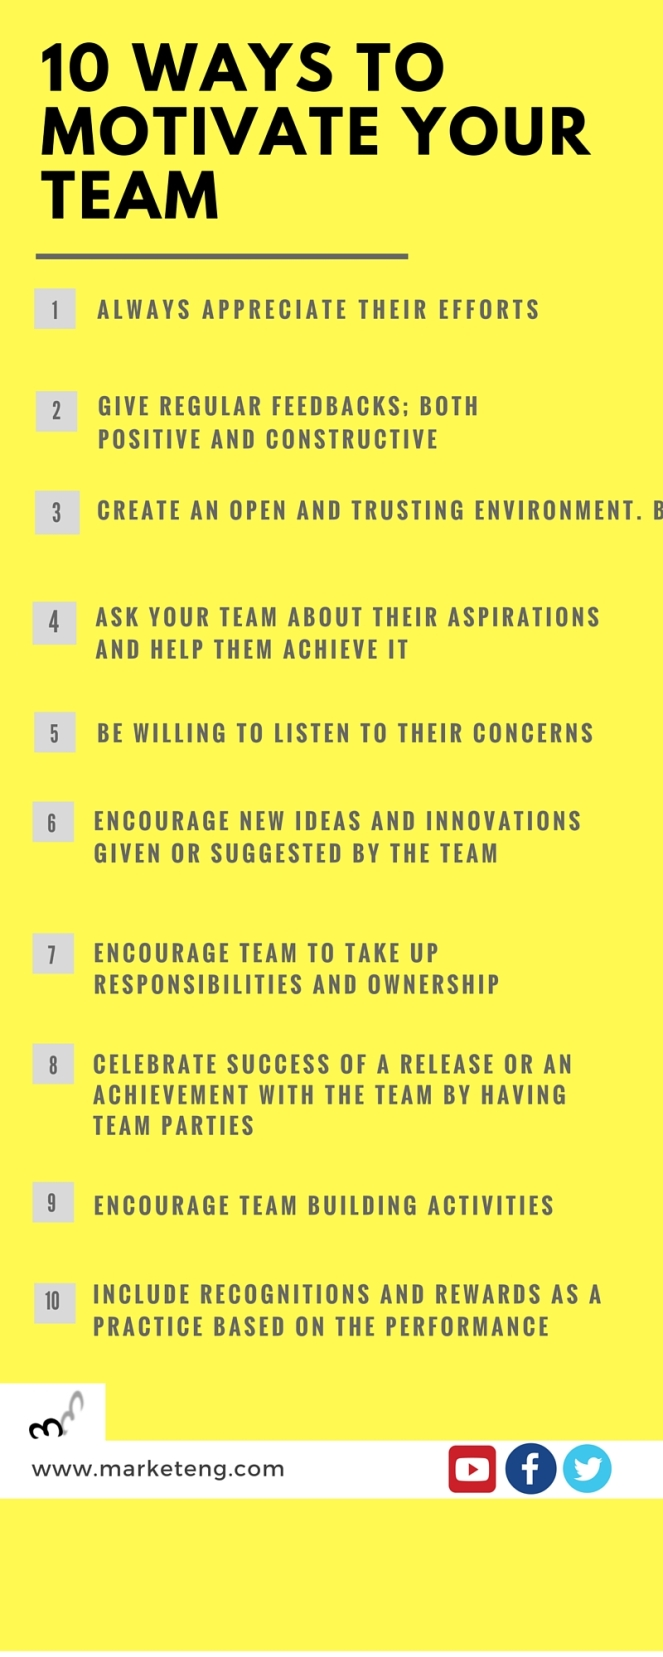 infographic_10 ways to motivate your team.jpg